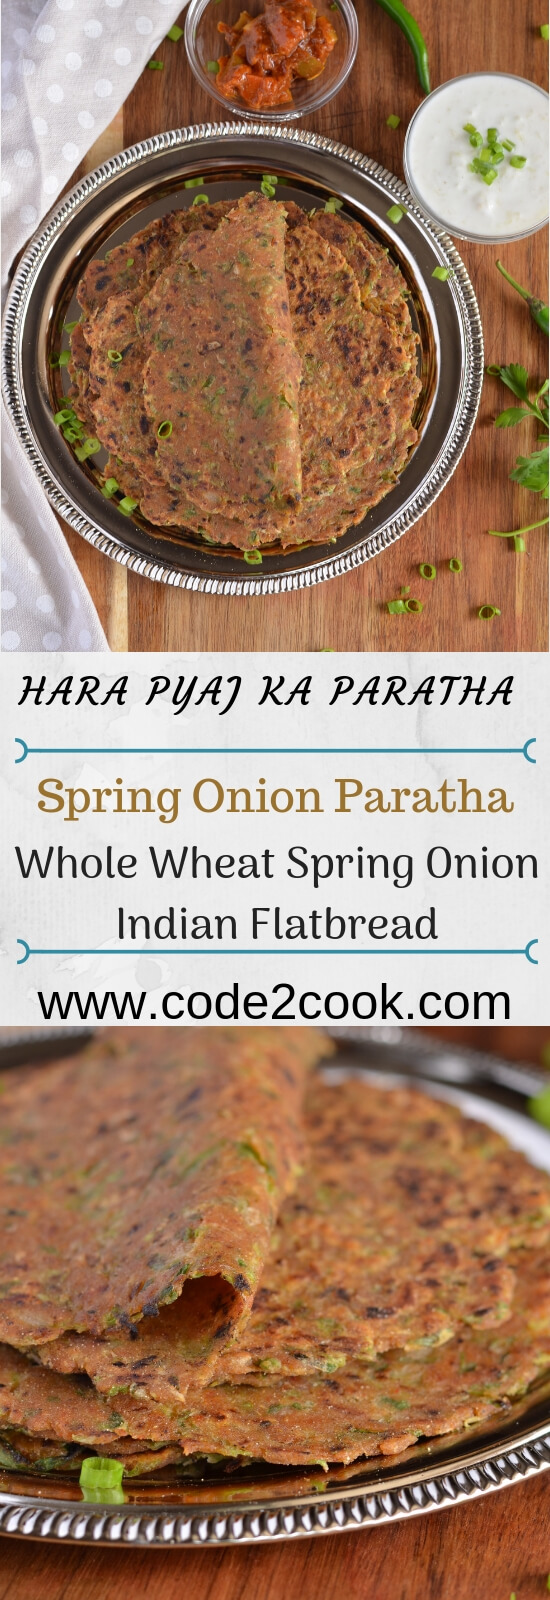 Hara pyazka paratha or spring onion paratha is another Indian flatbread recipe where vegetables and spices kneaded along with the whole wheat flour. Such parathas are easy to make, very quick process when compare to stuff parathas, and the best part is kids love these. Another breakfast option which is suitable for a kid's lunchbox too.